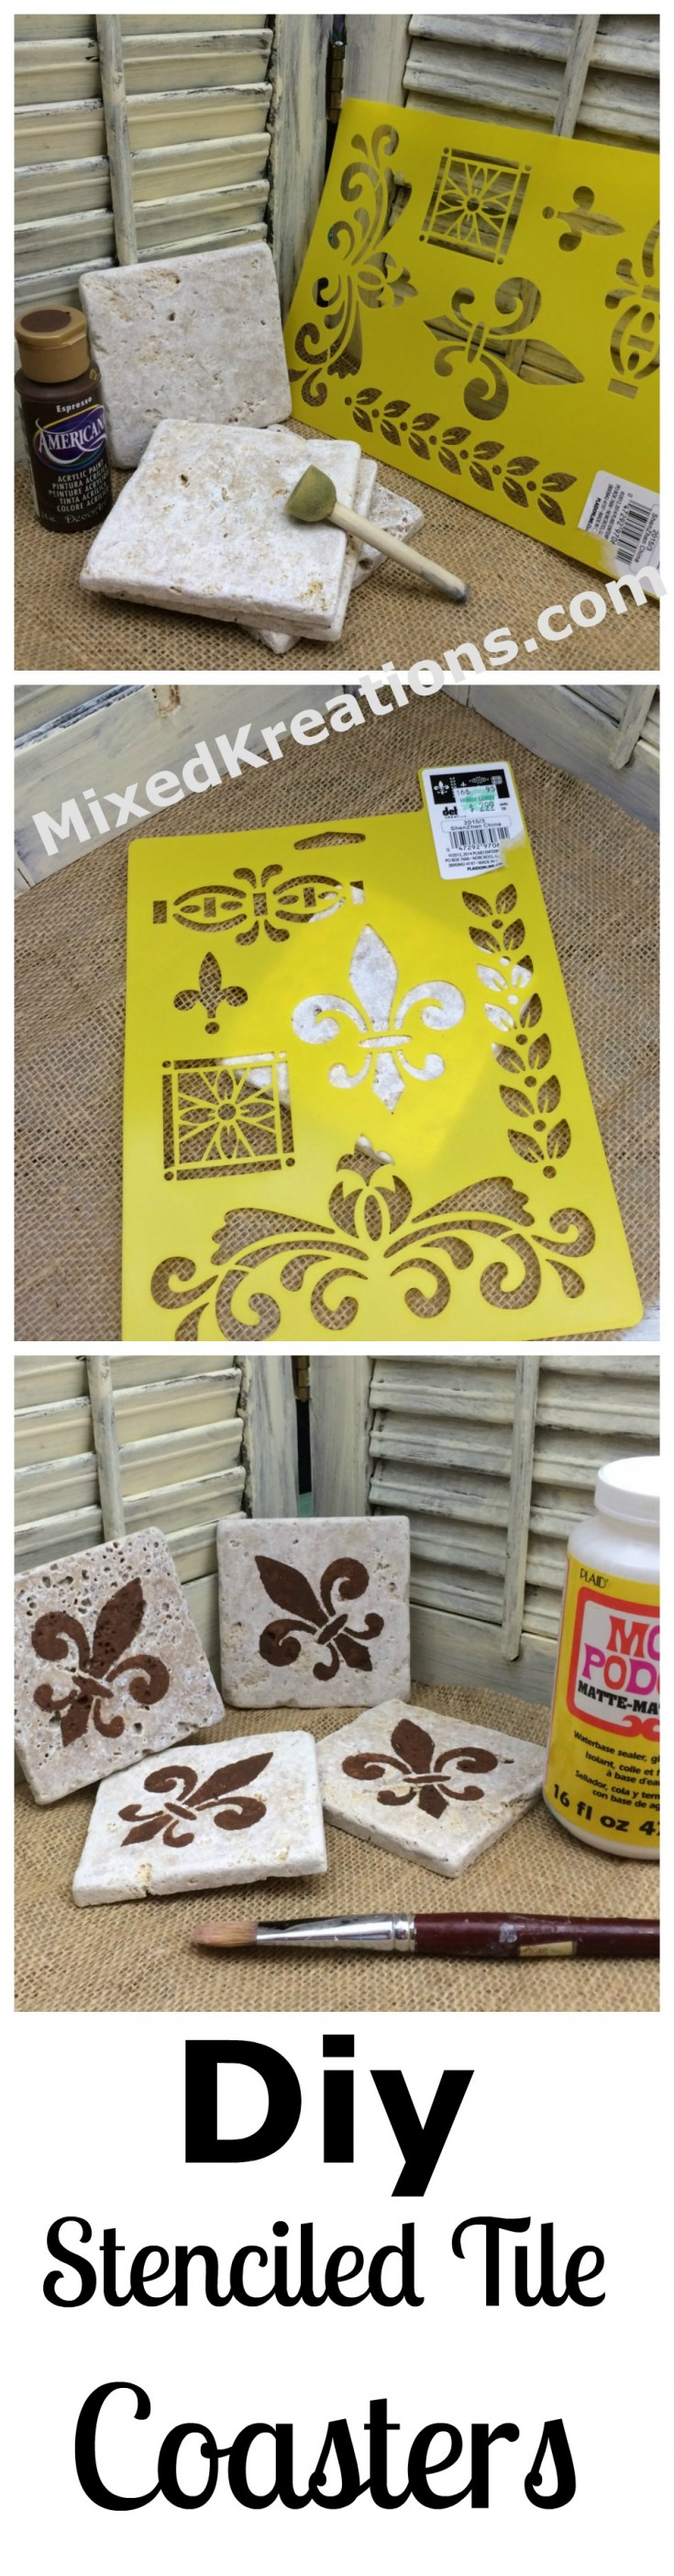 diy stenciled tile coasters